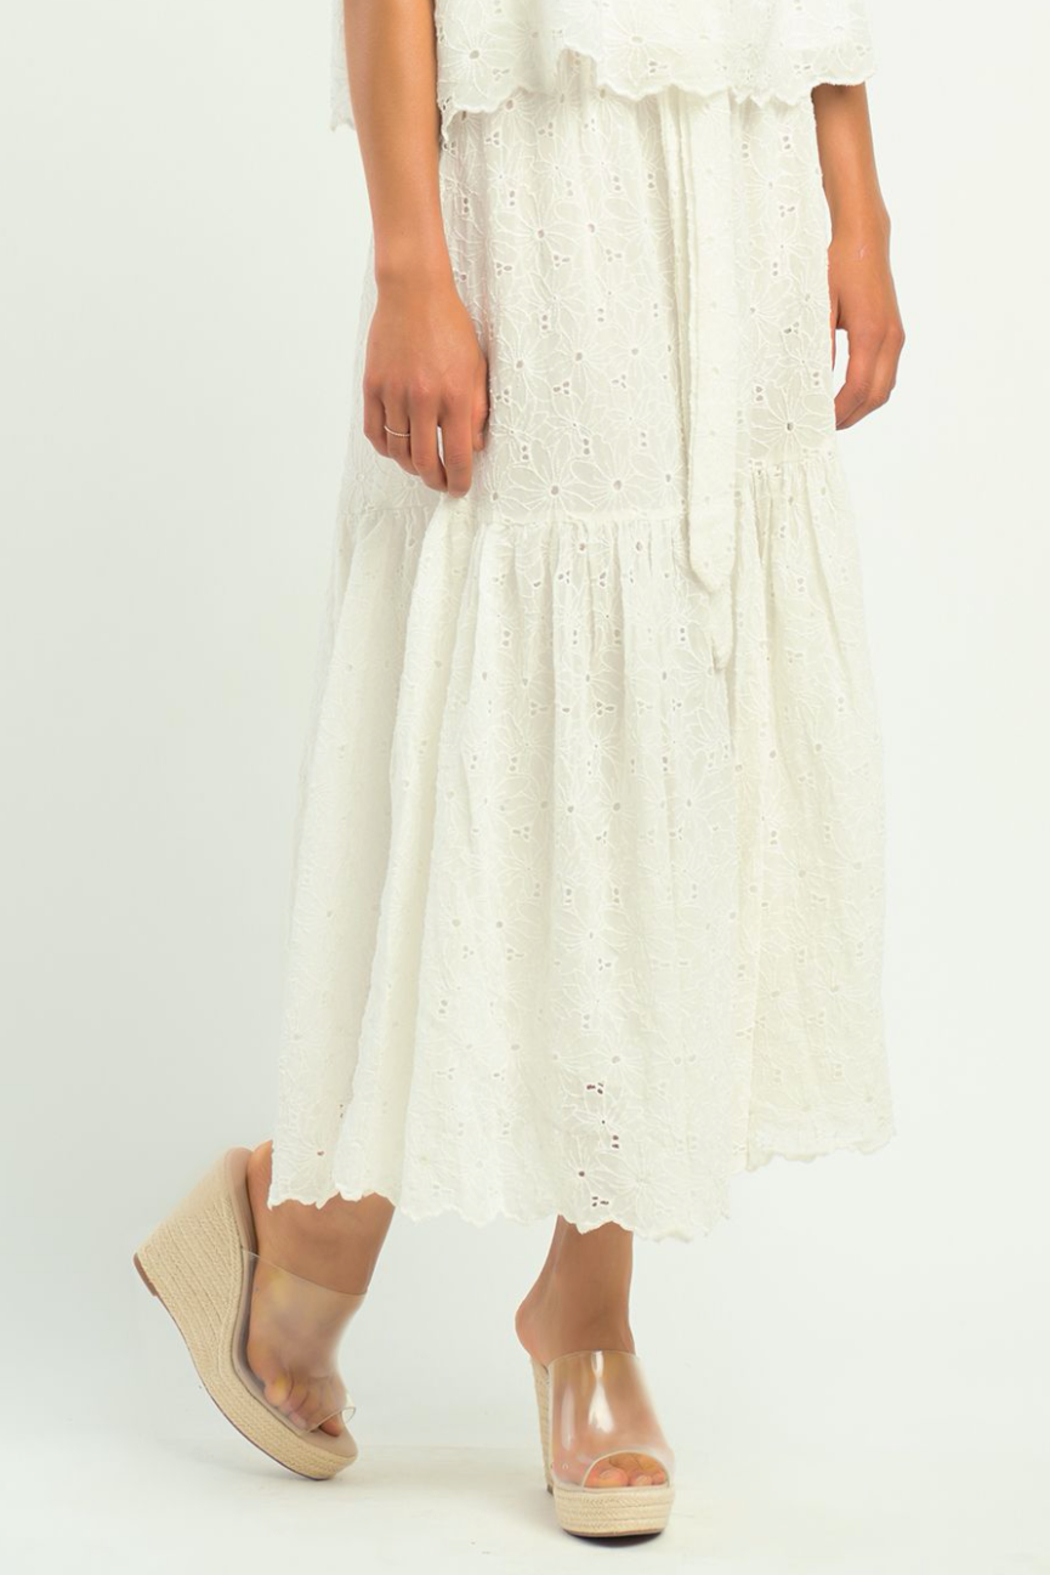 Dex TIERED FLORAL EYELET SKIRT - Front Full Image